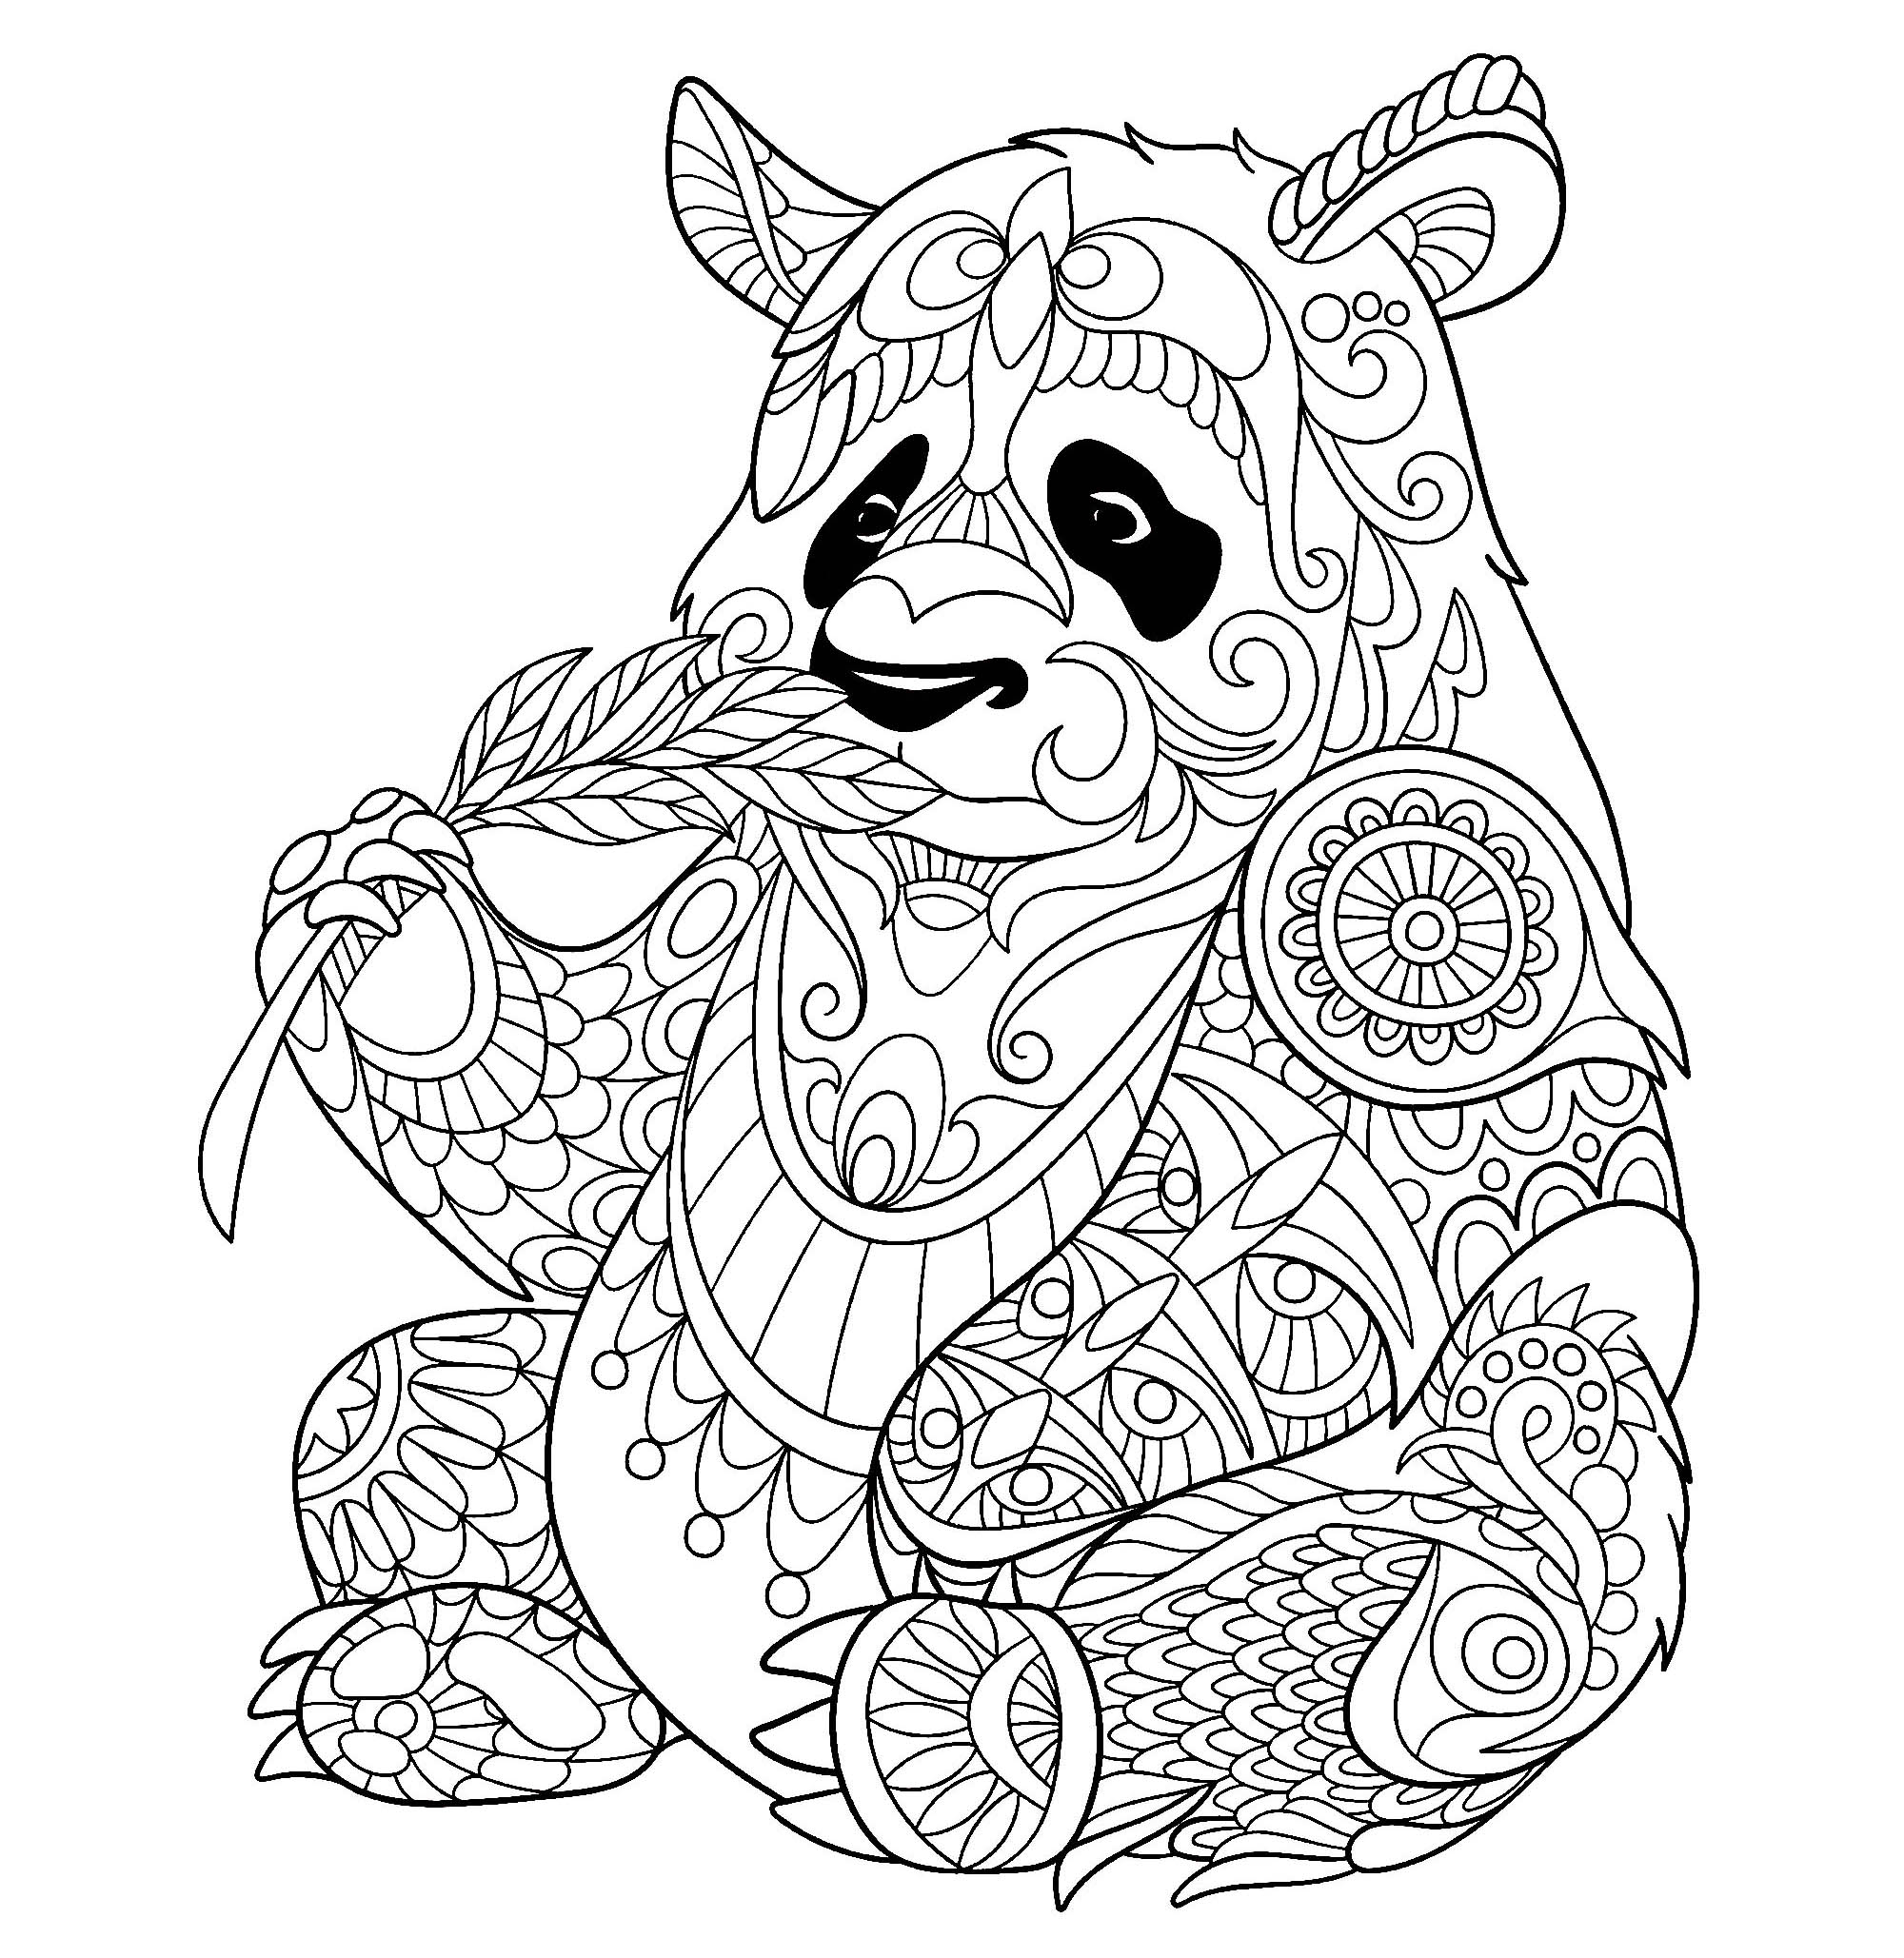 panda bamboo shoot p a coloring pages